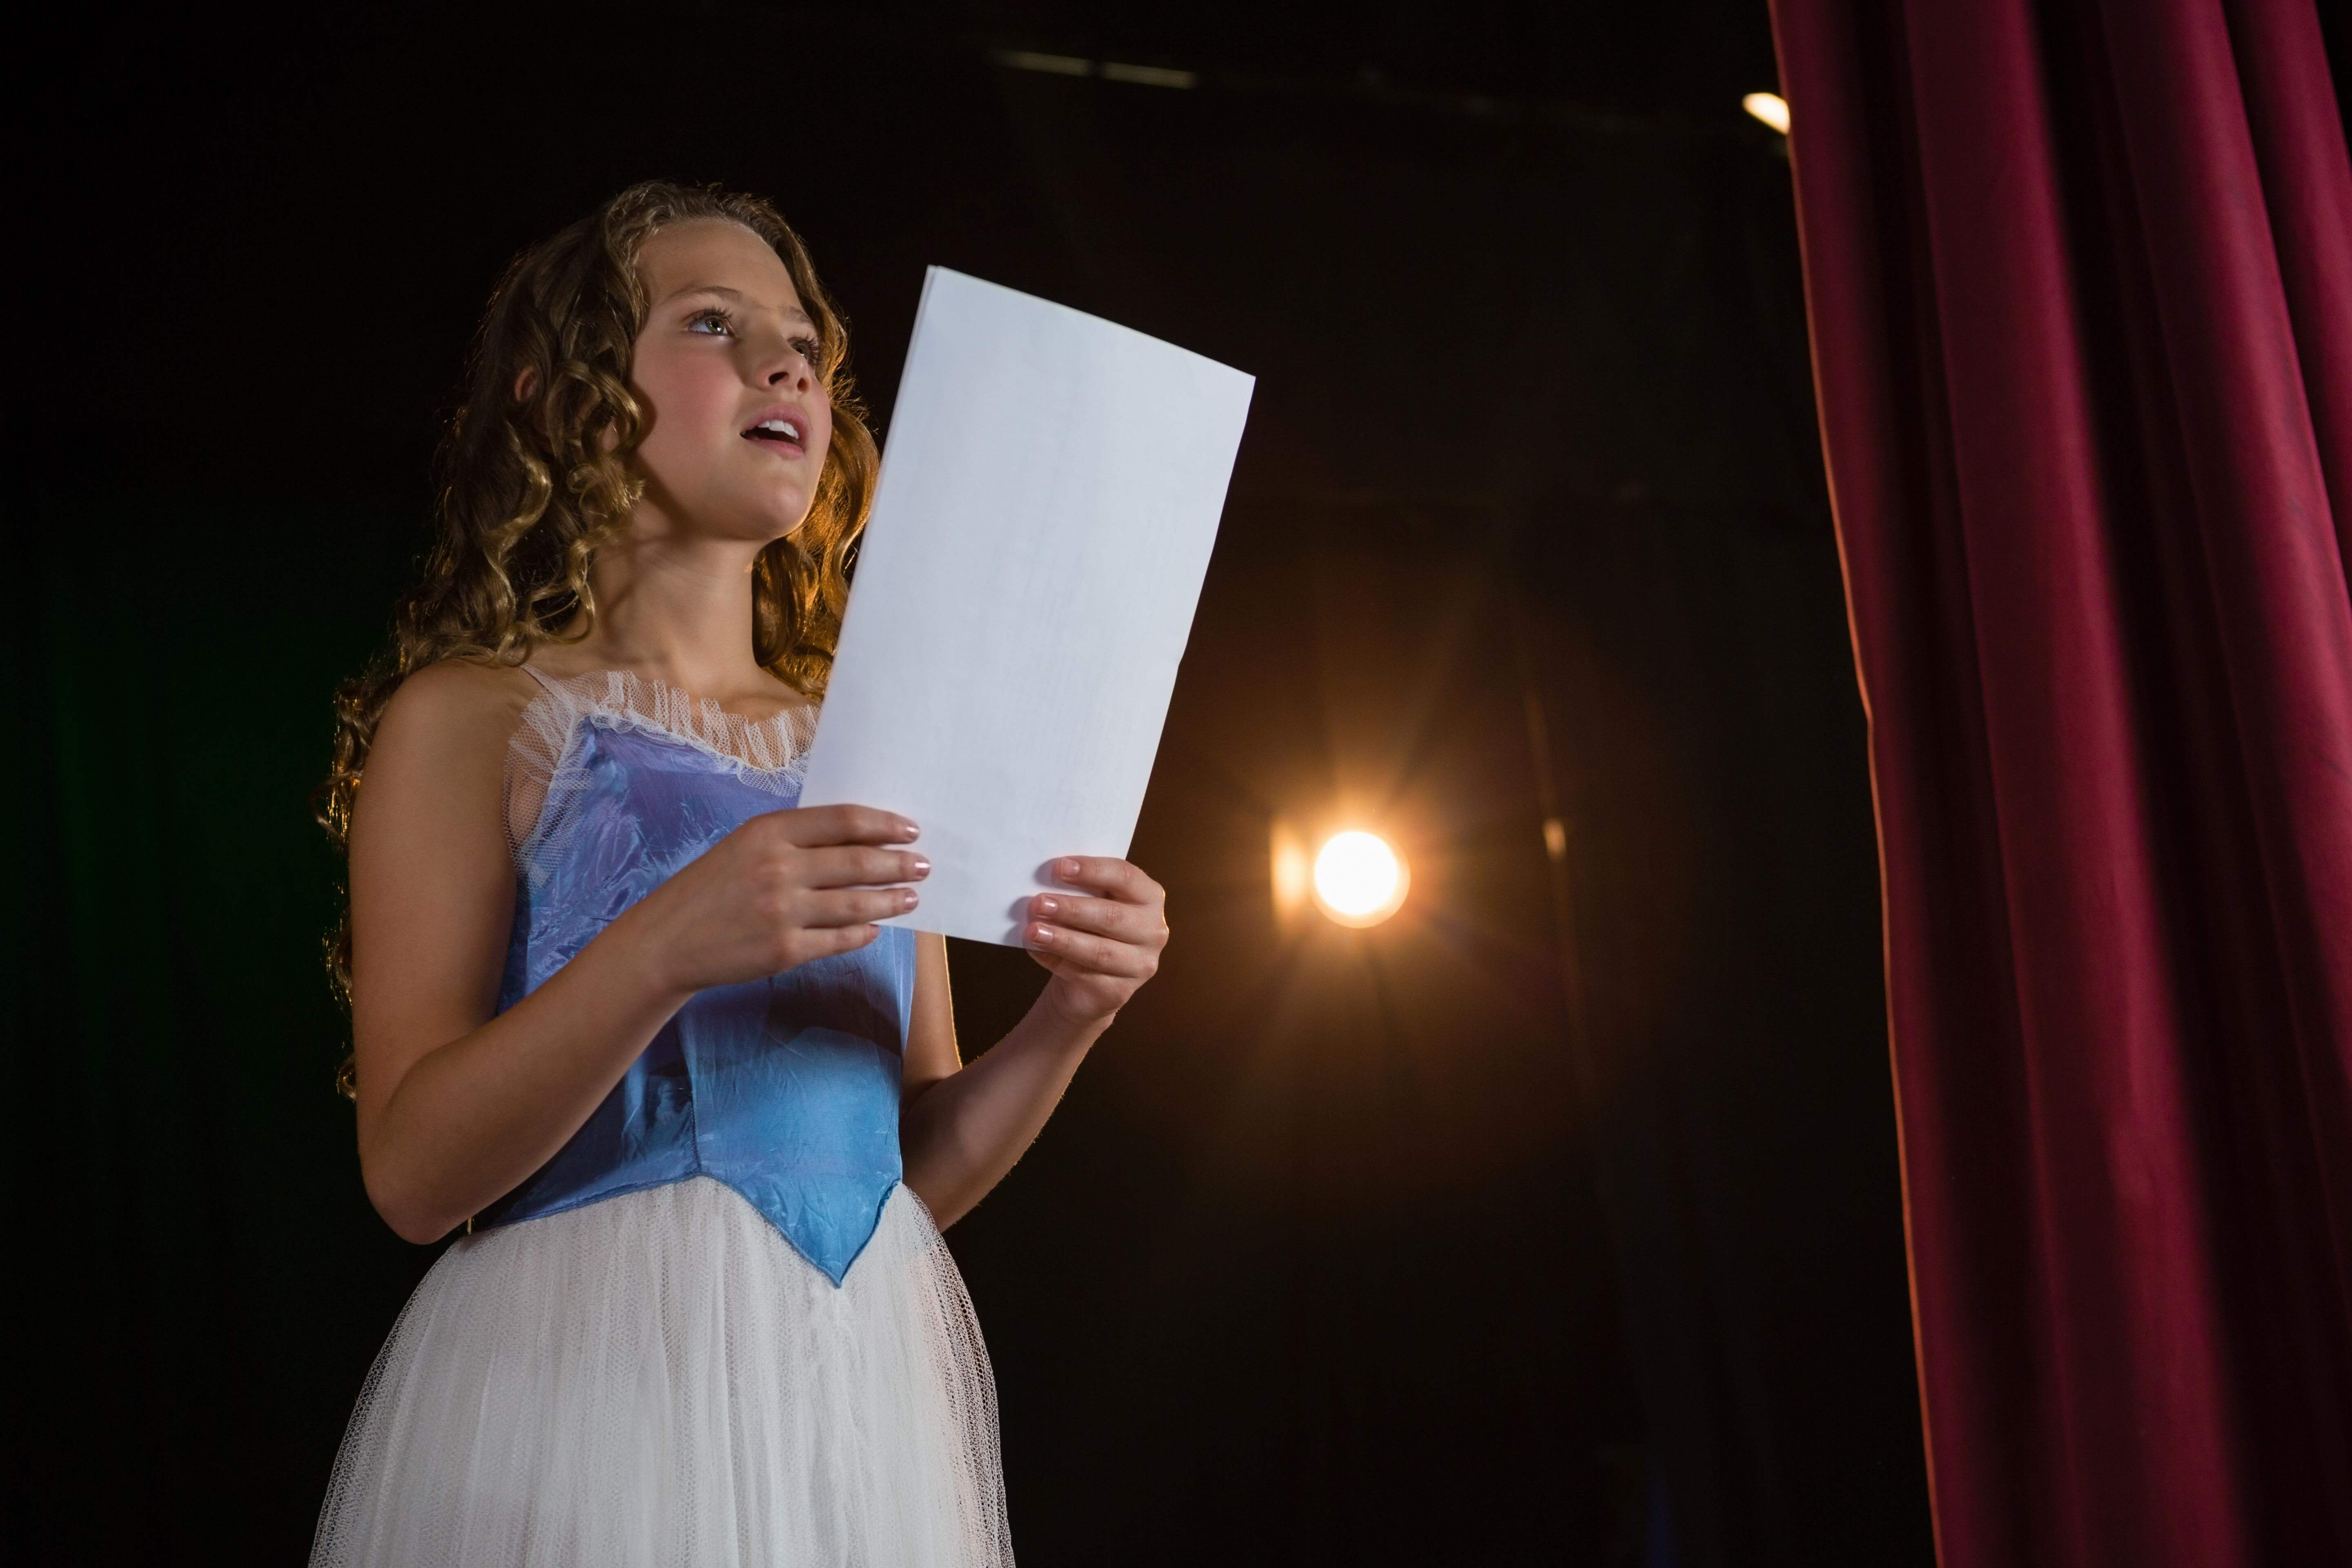 A girl reads from a script while acting in a play.